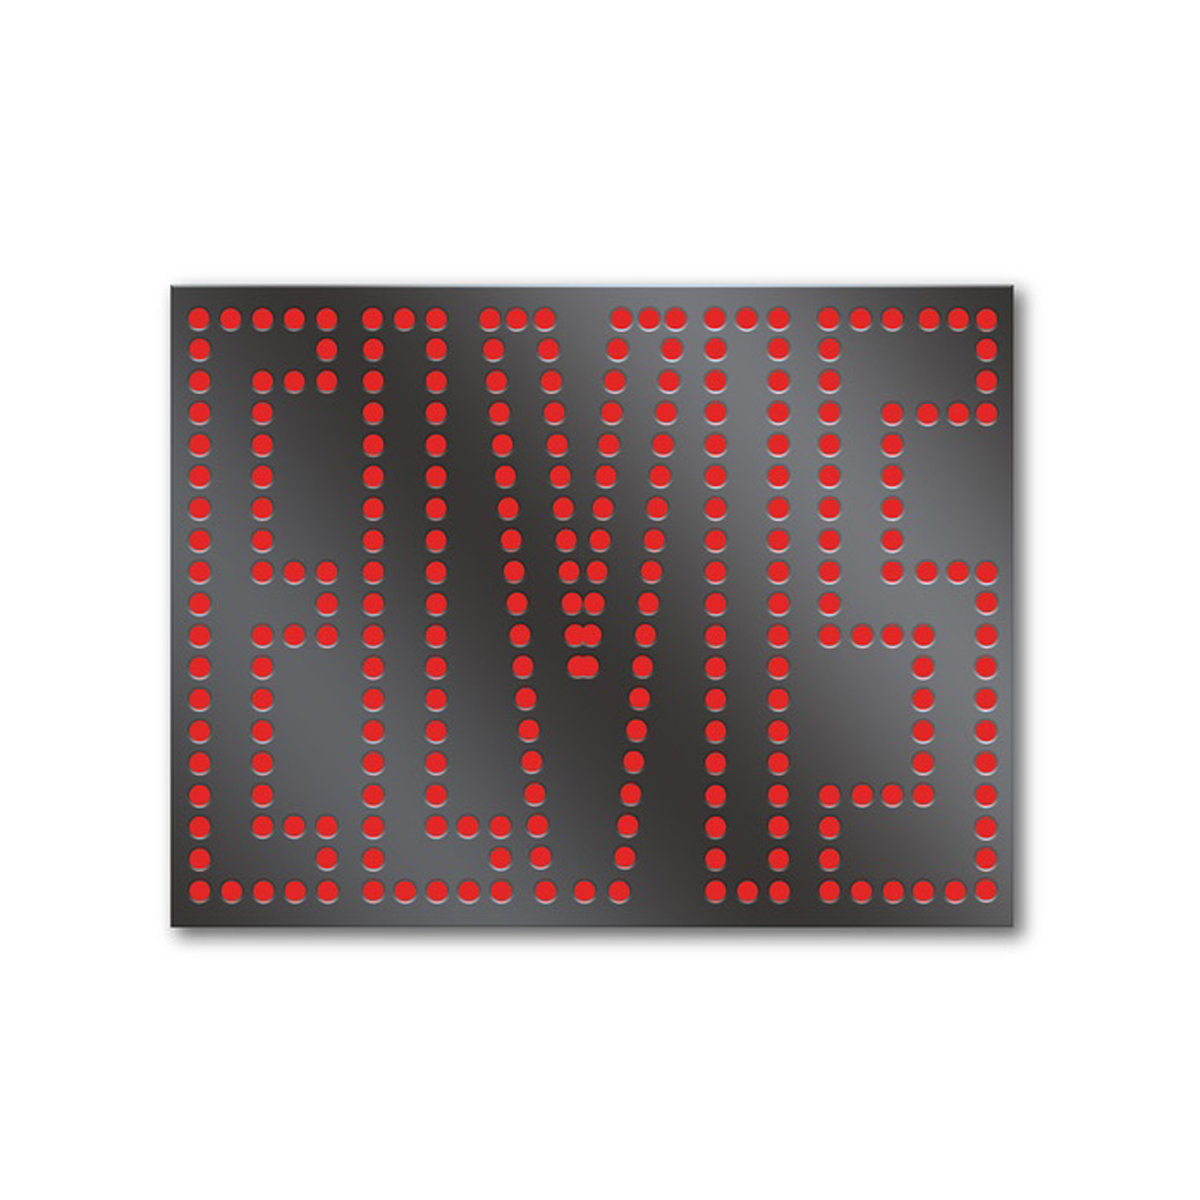 ELVIS in Lights Enamel Pin